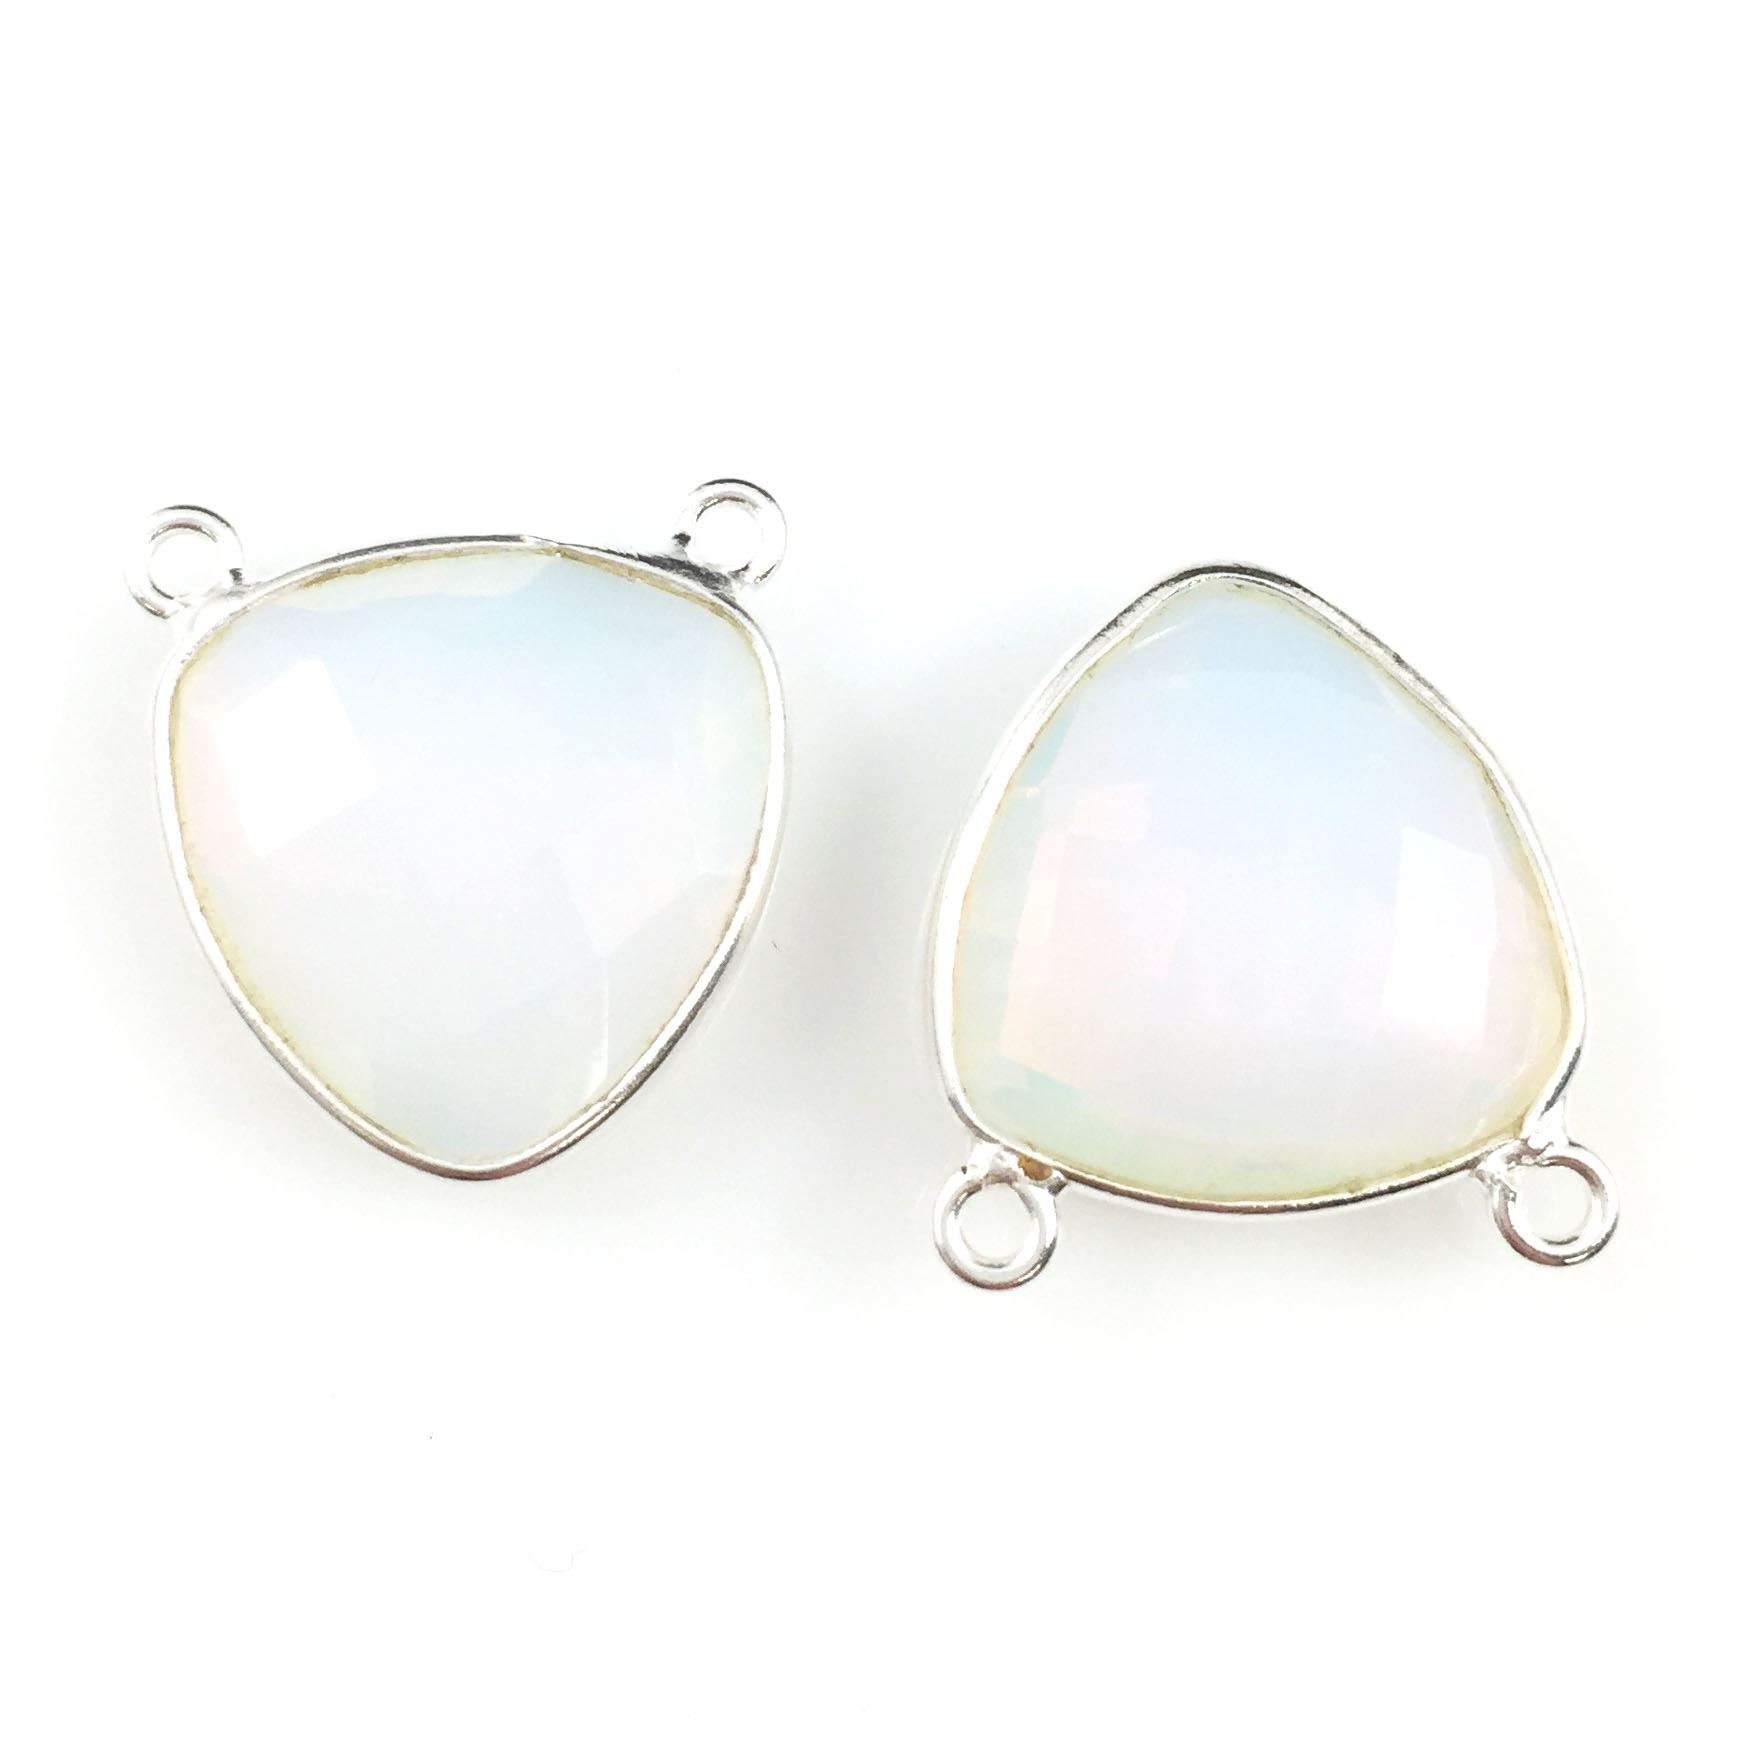 Bezel Gemstone Connector Pendant - Opalite Quartz - Sterling Silver - Small Trillion Shaped Faceted - 15mm - 1 piece